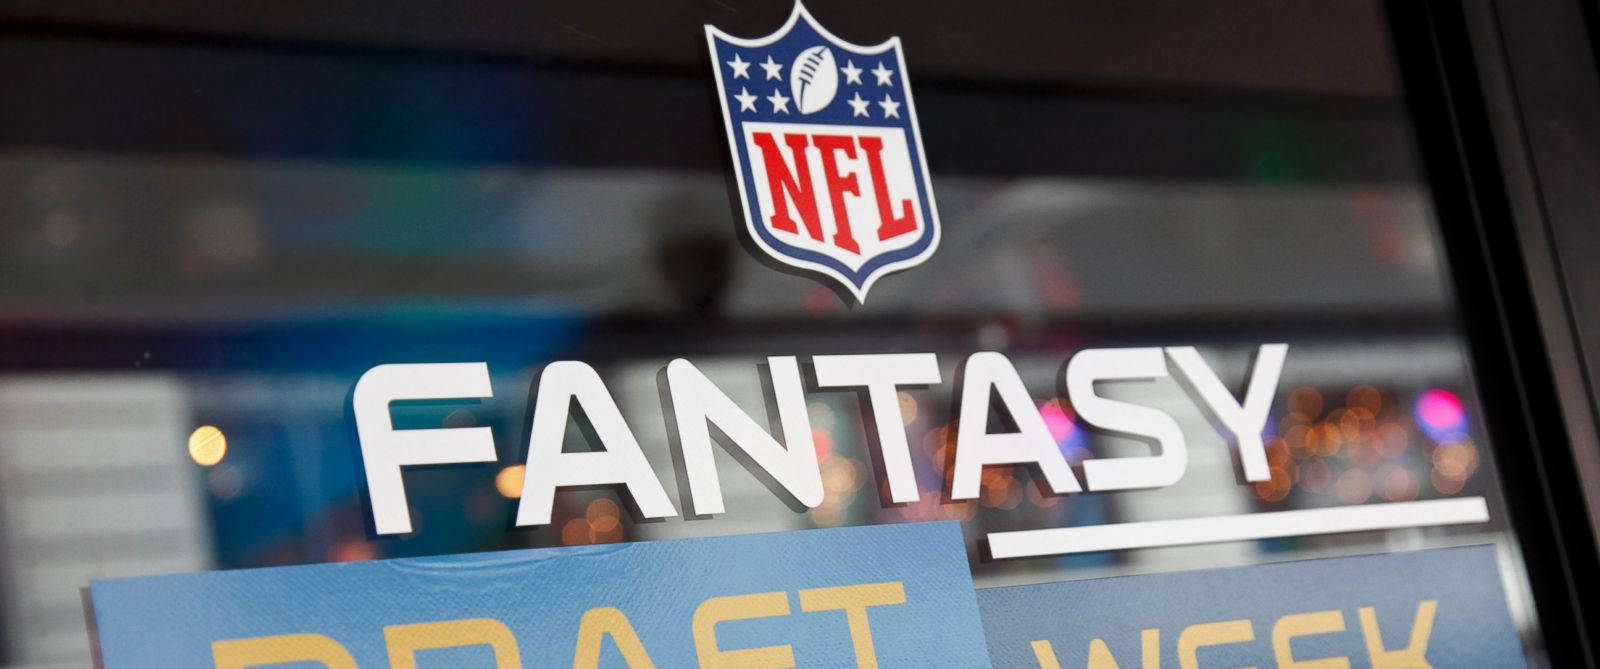 PHOTO: A general view of atmosphere is seen during the DirecTV NFL Fantasy Week on Aug. 22, 2012 at the Best Buy Theater in Times Square in New York.